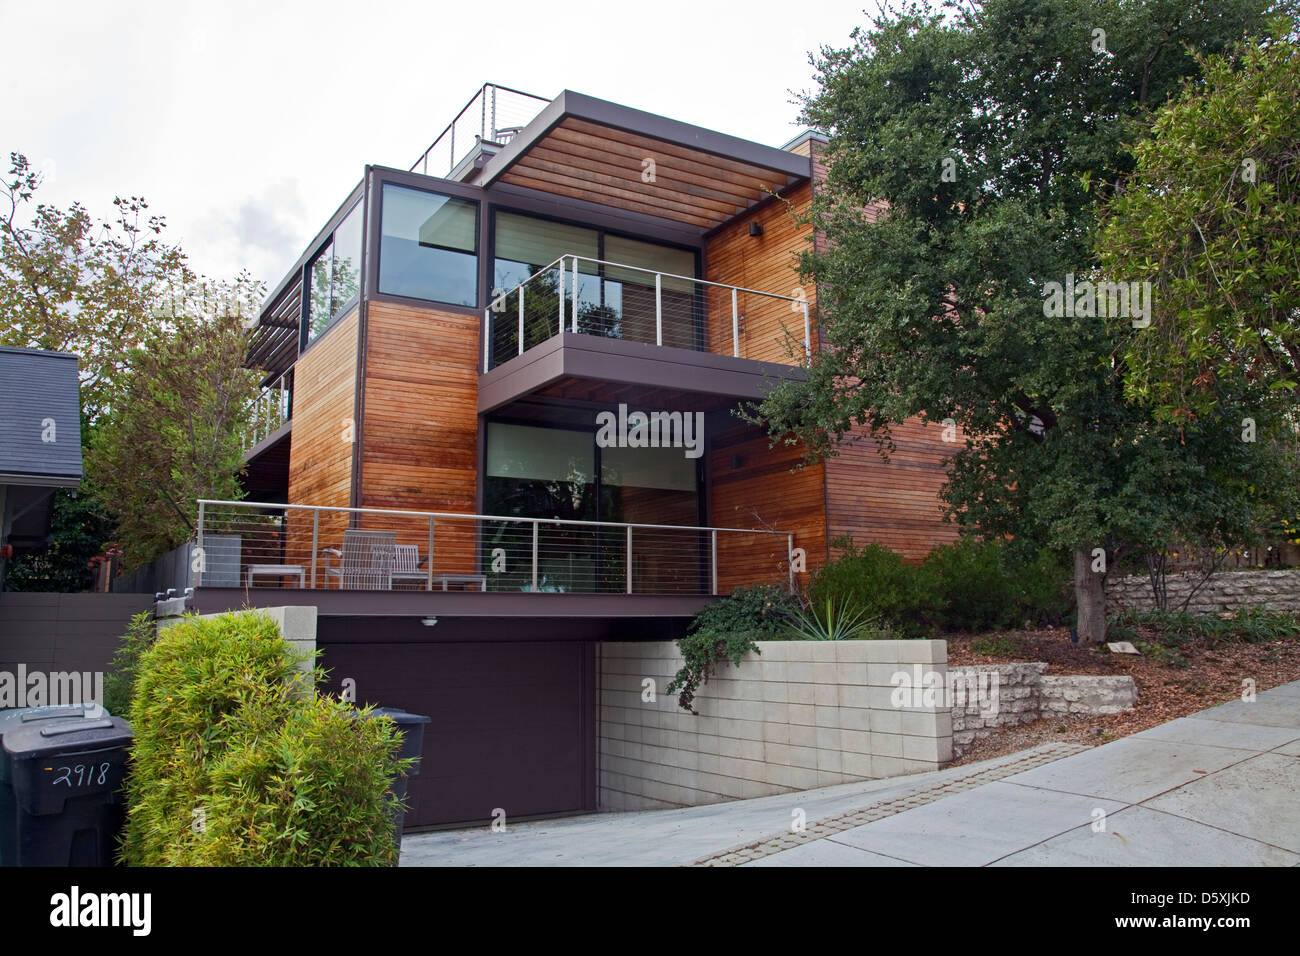 Elegant A Multi Level, Prefab, Modular Green Home By The Company LivingHomes And  Consists Of 11 Modular Sections. Santa Monica, CA